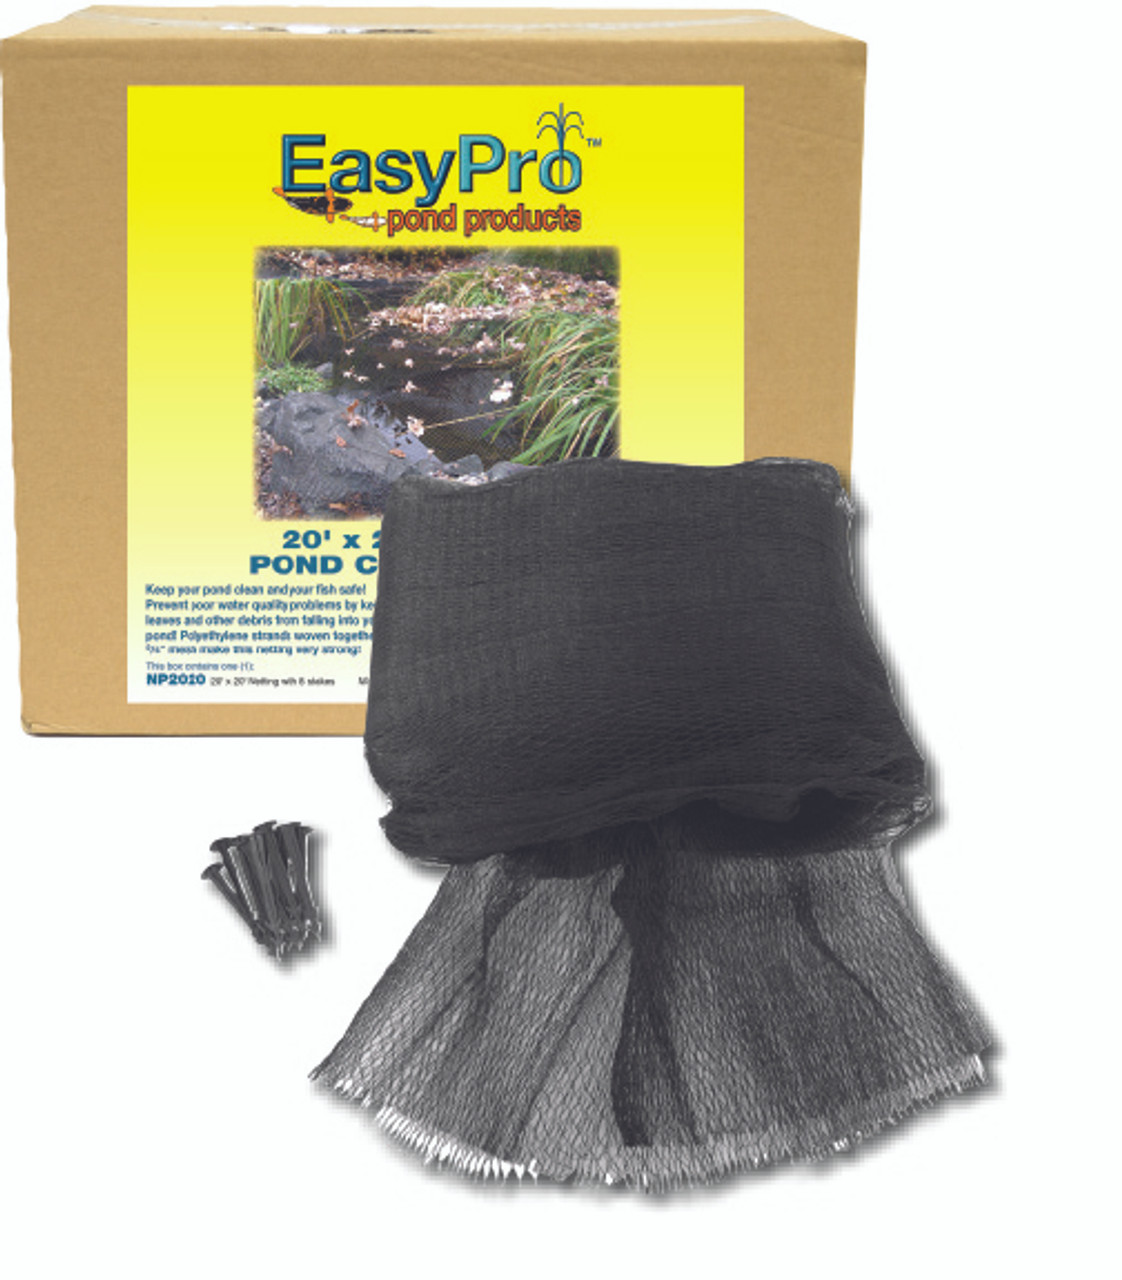 3/4-in. EasyPro Premium Pre-Cut Pond Netting w/ Stakes